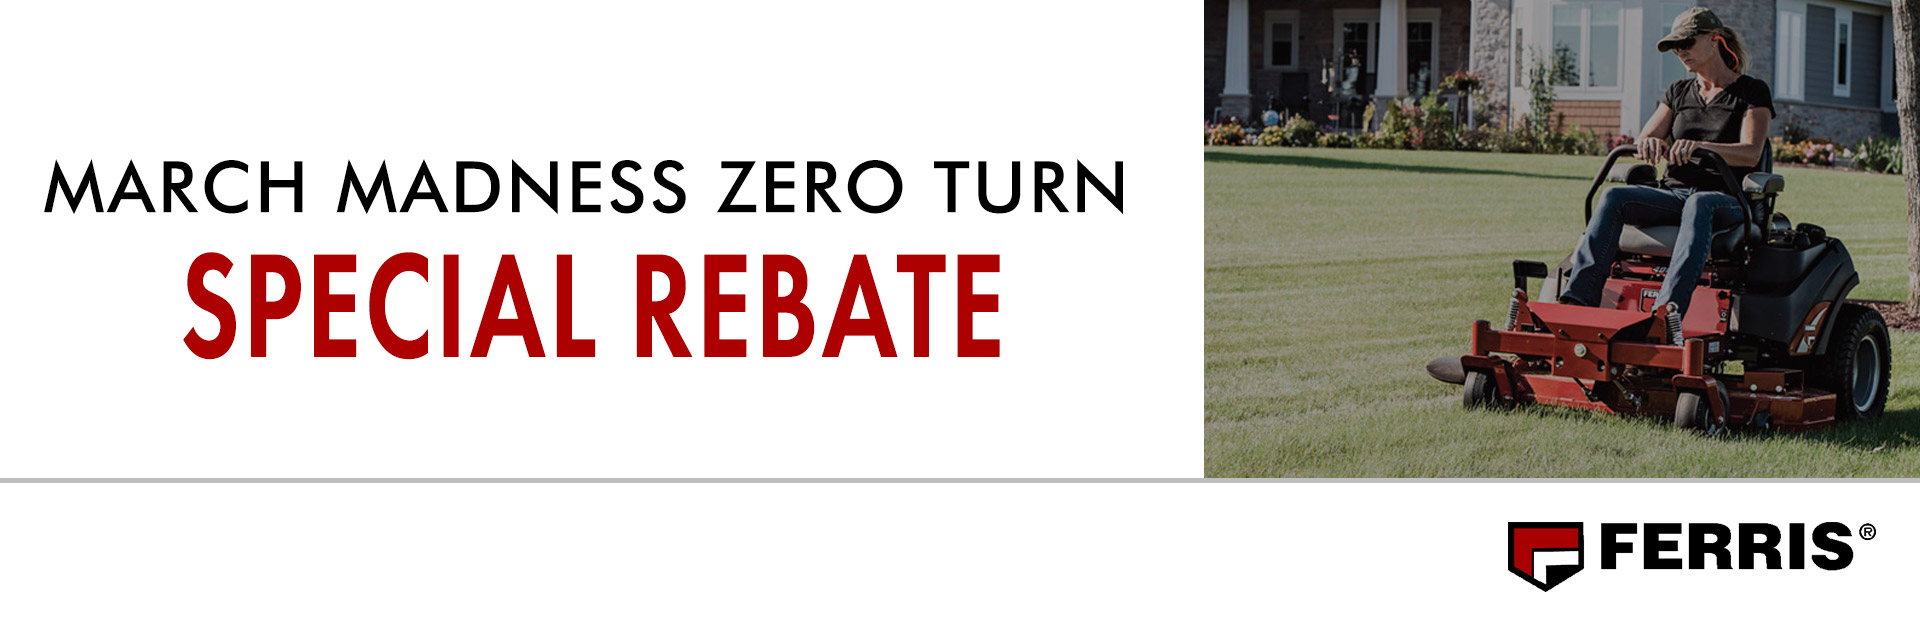 Ferris: MARCH MADNESS ZERO TURN SPECIAL REBATE